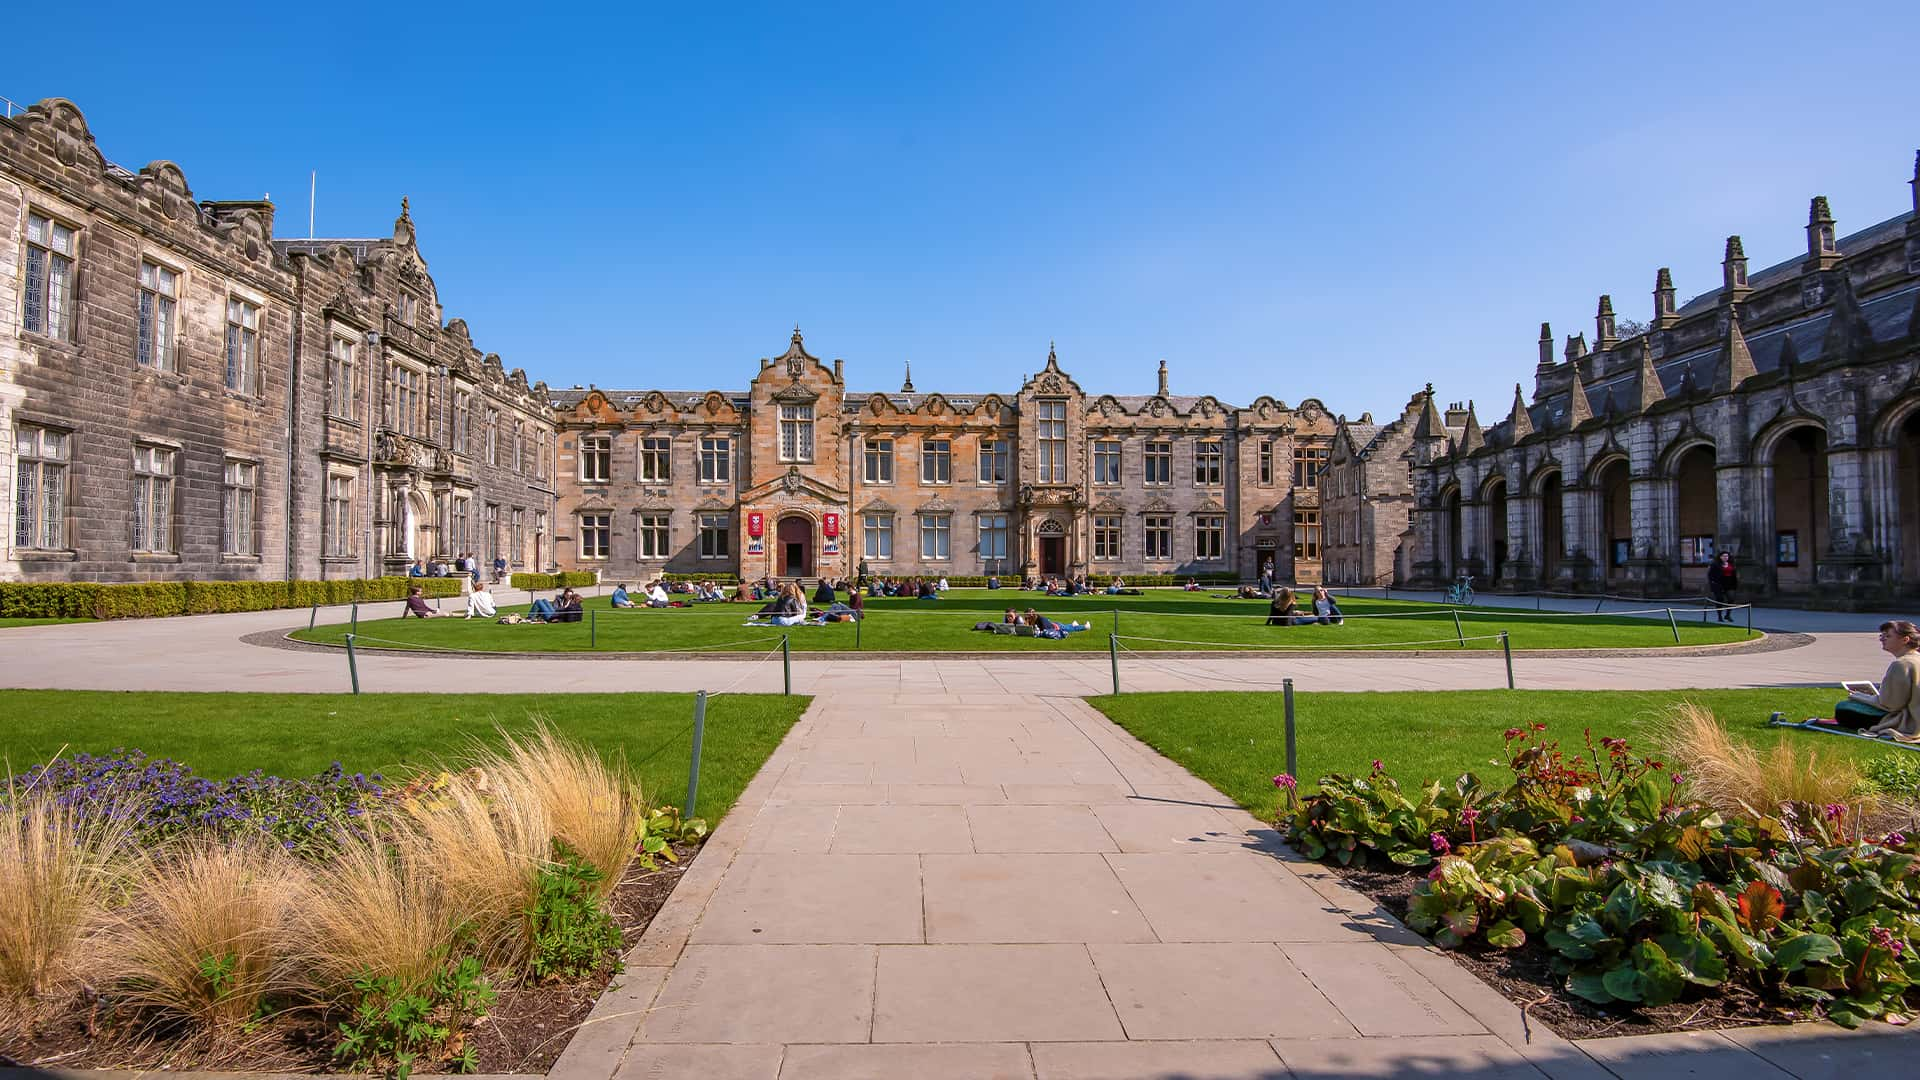 St Salvator's Quad